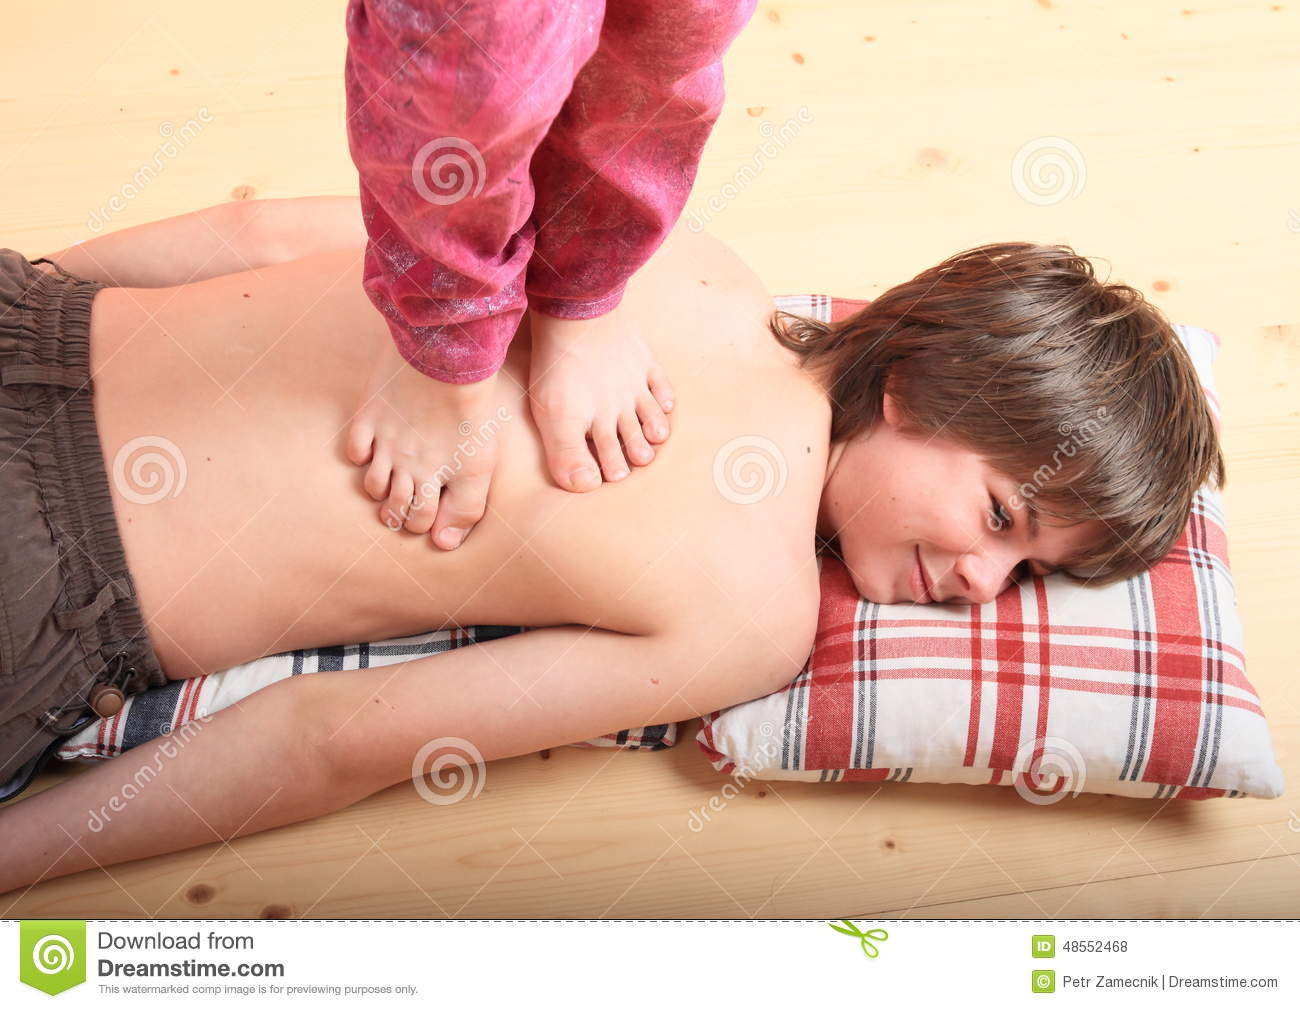 Boy Massaged By A Girl Stock Photo Image Of Shell -1364